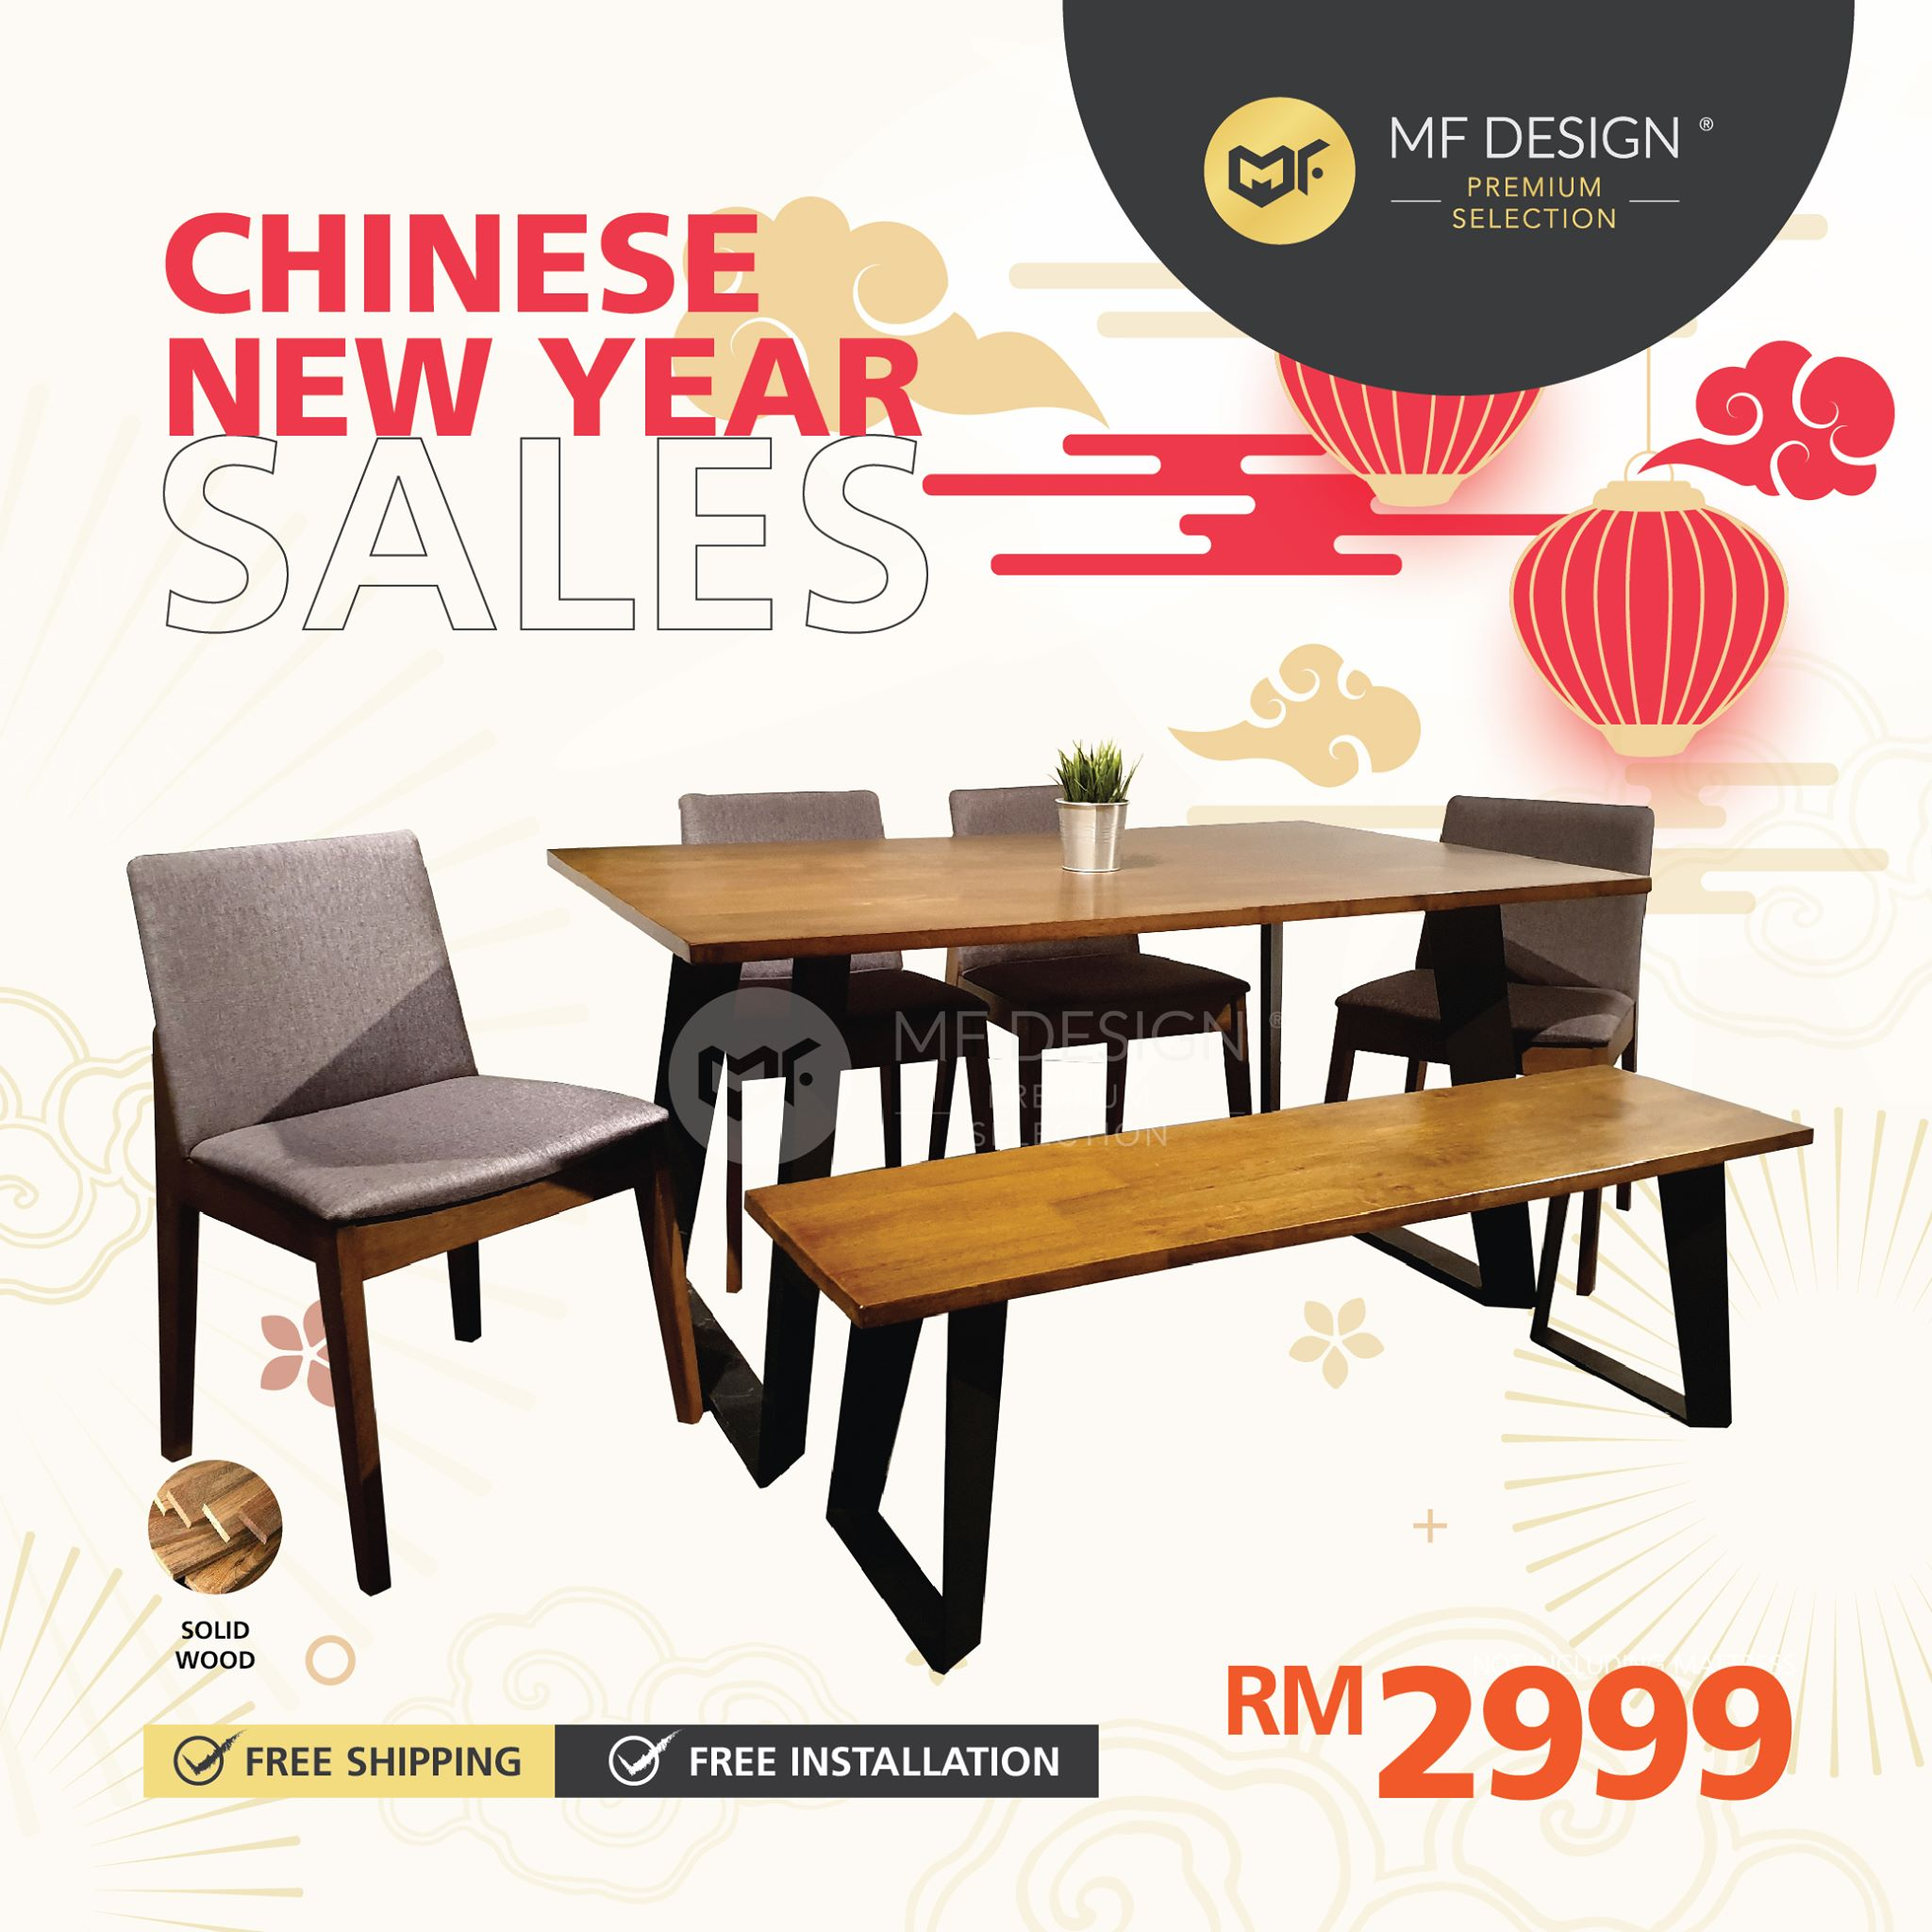 (Free Delivery)  MFD Premium Cyrus Dining Set Dining set / 1+6 Set / Chair / Table / 6 Seater / Meja Makan Kerusi